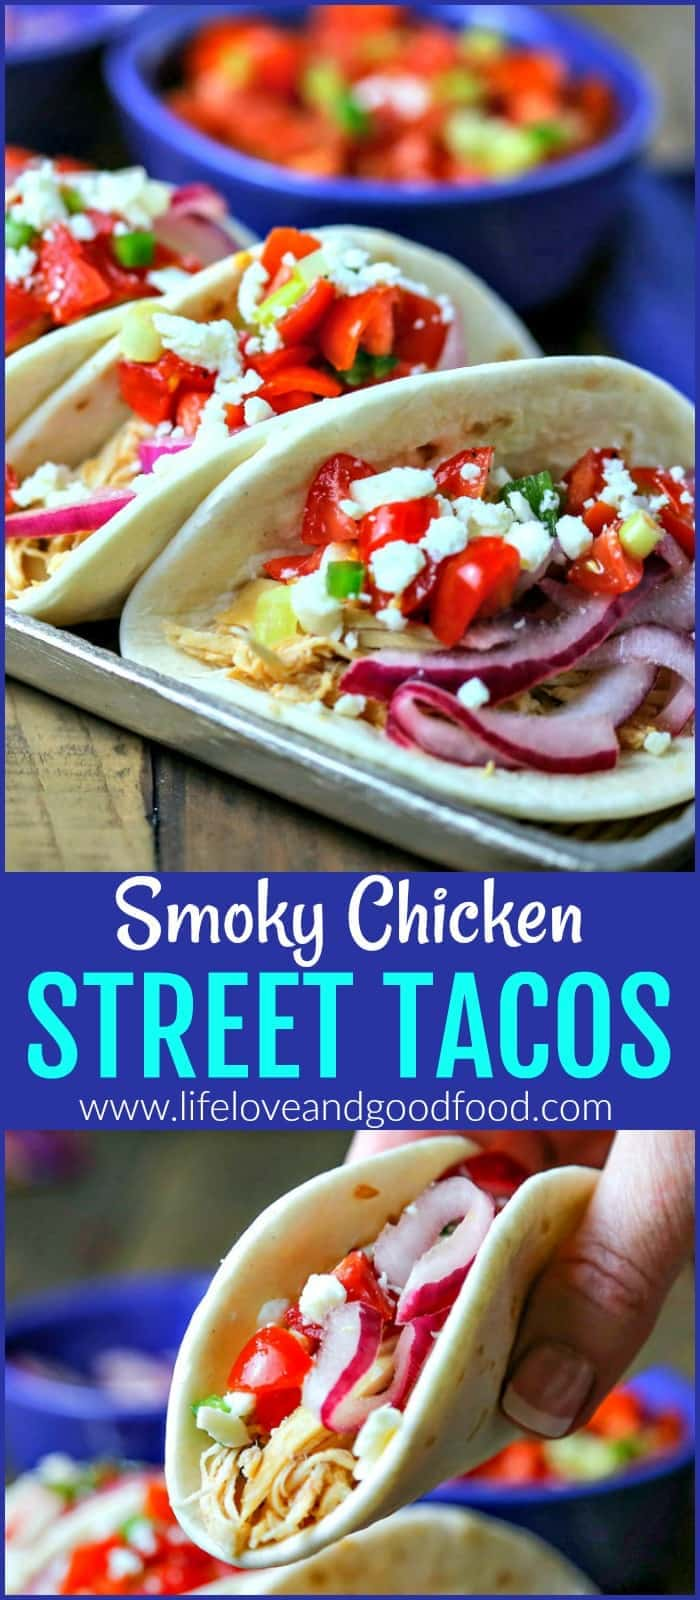 Smoky Chicken Street Tacos with Pickled Red Onion and Fresh Salsa — made in your slow cooker! #slowcooker #tacos #chicken